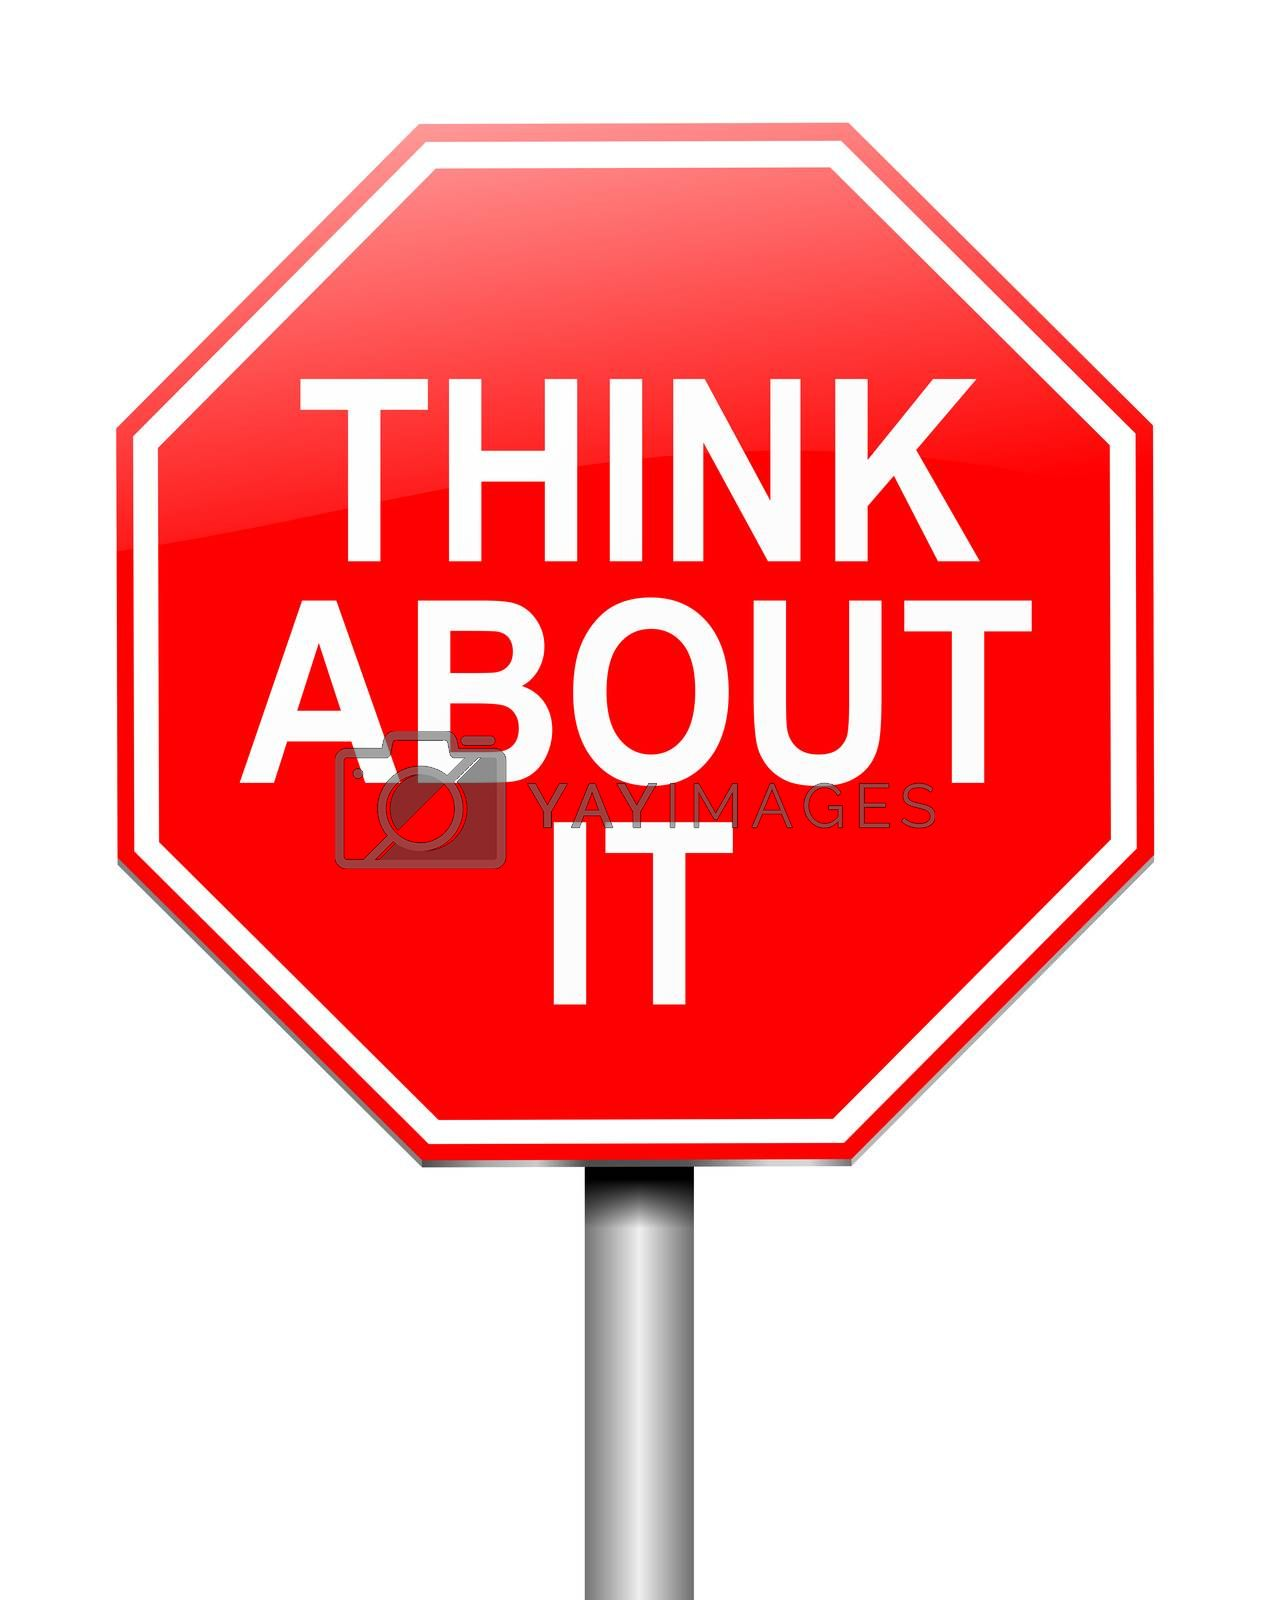 Illustration depicting a sign with a think about it message.